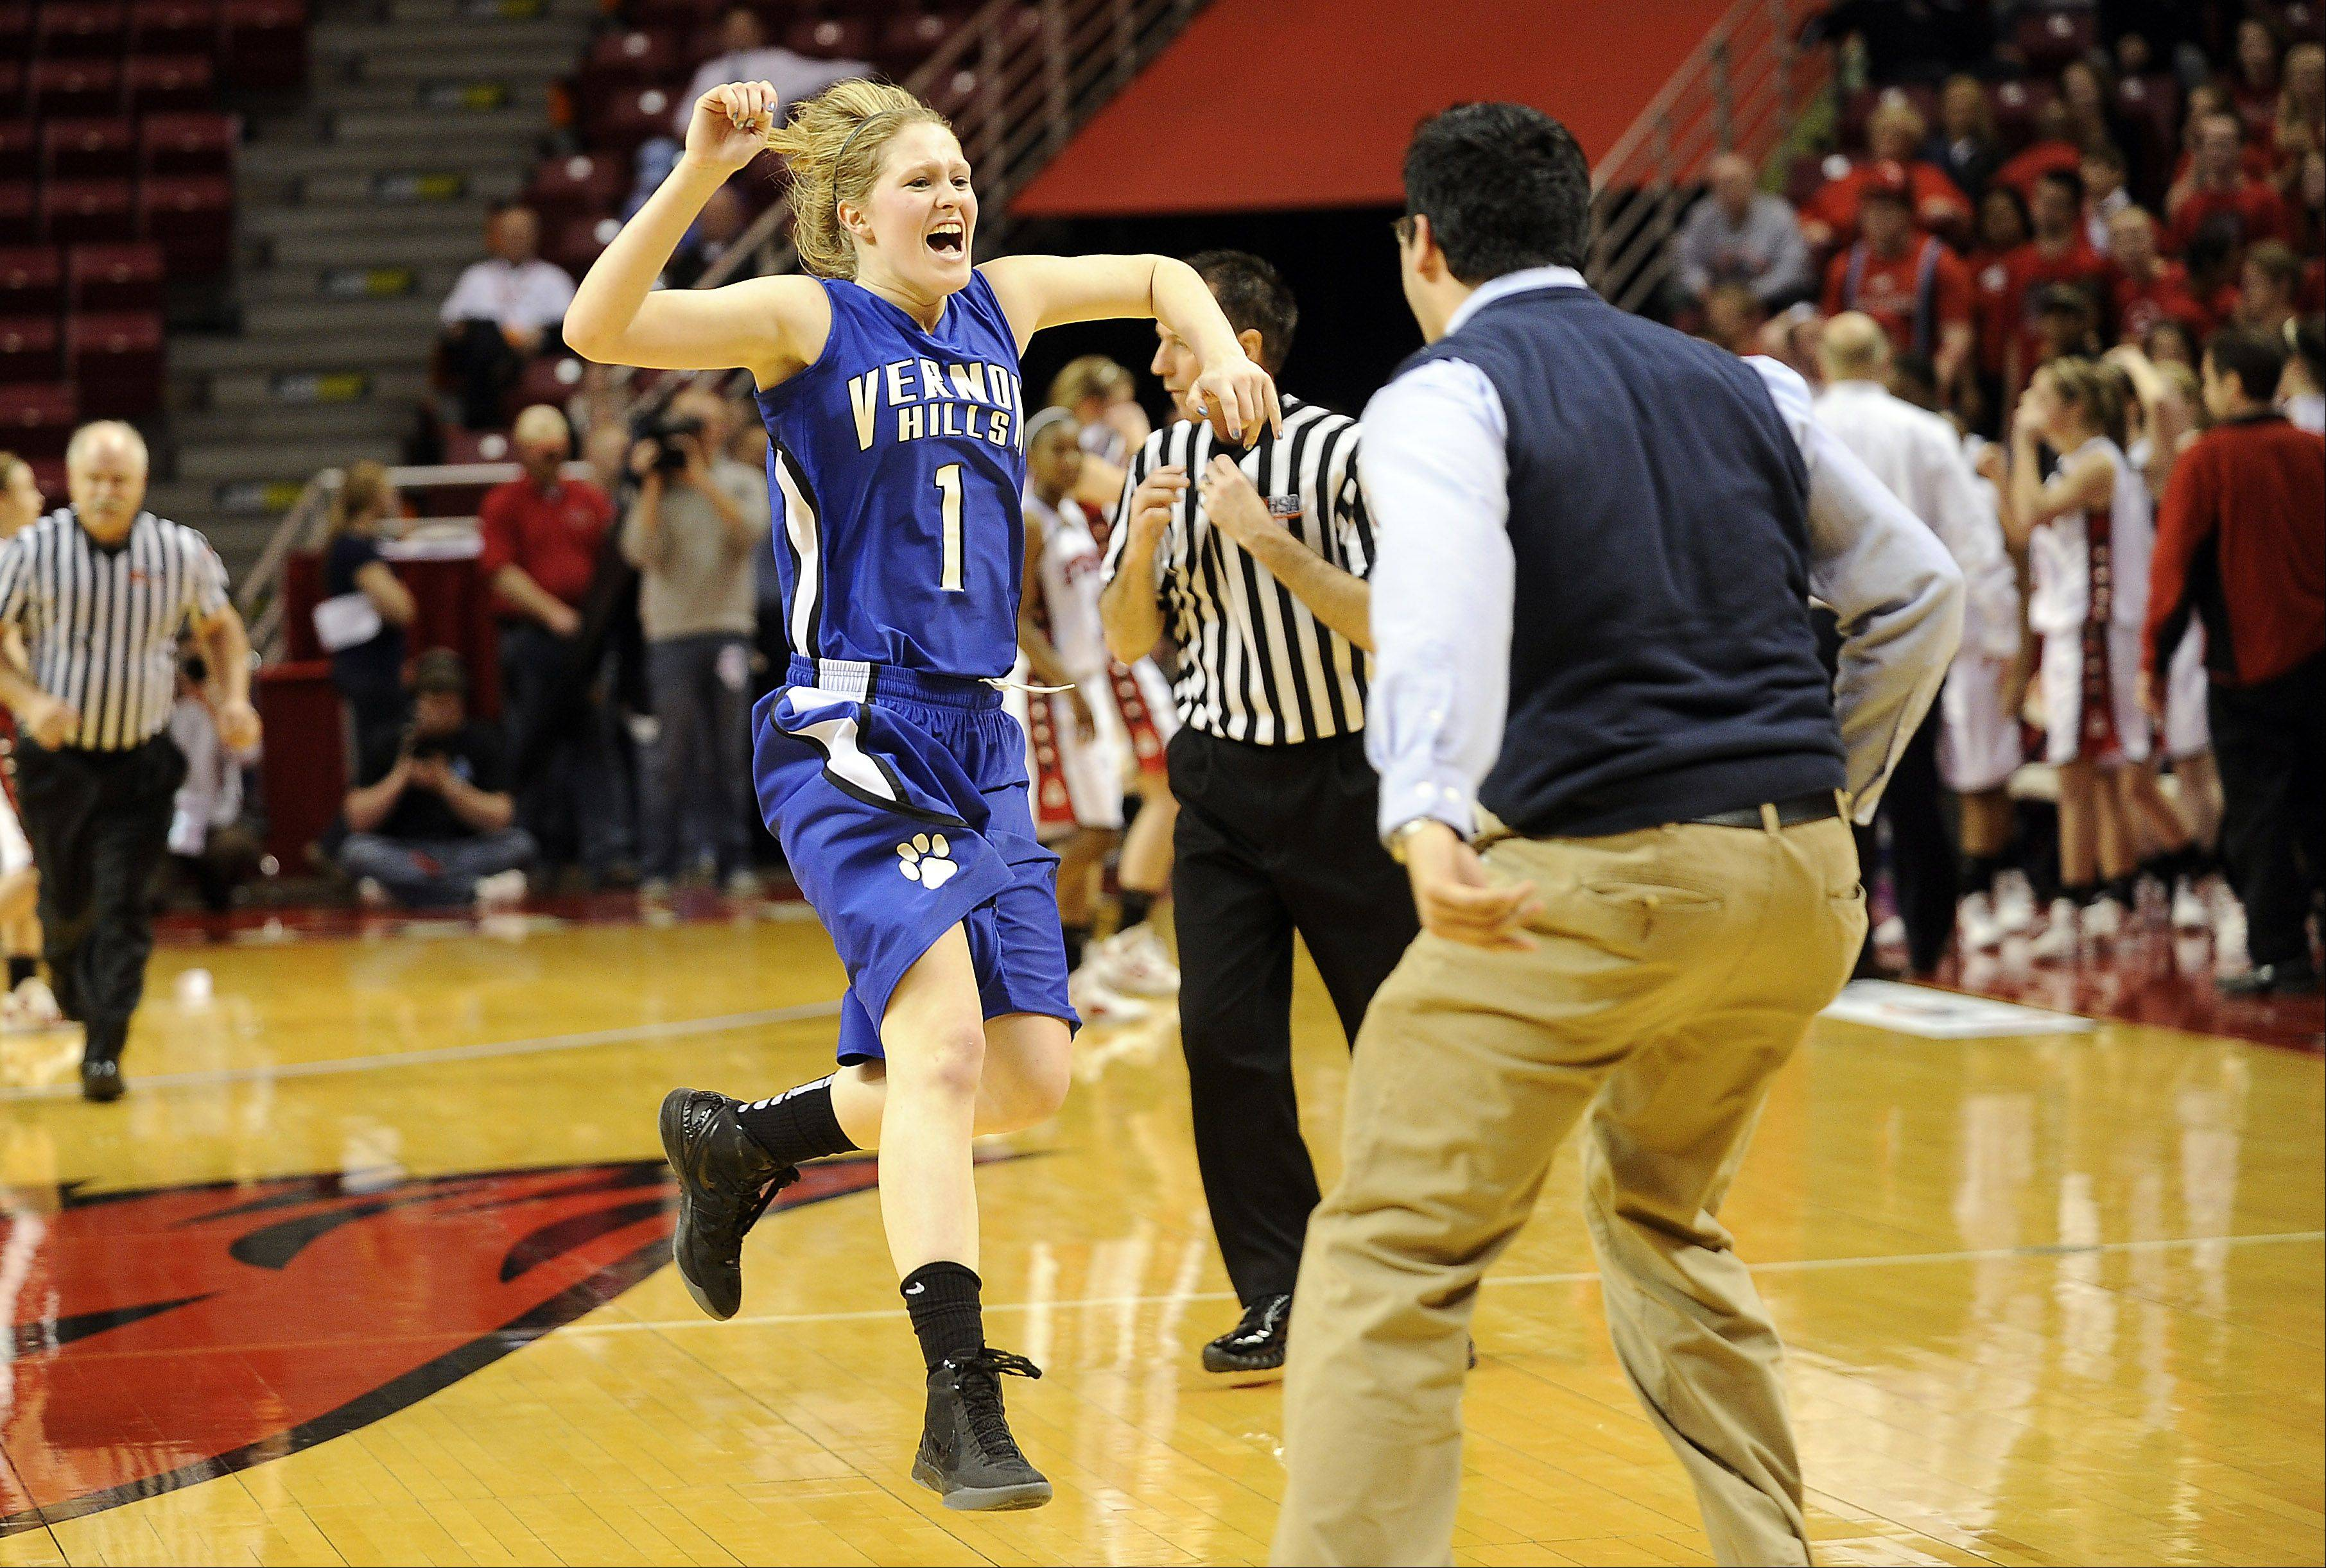 Vernon Hills' Sydney Smith jumps for joy during the Cougars' victory over Springfield in the Class 3A state semifinals in Normal Friday.